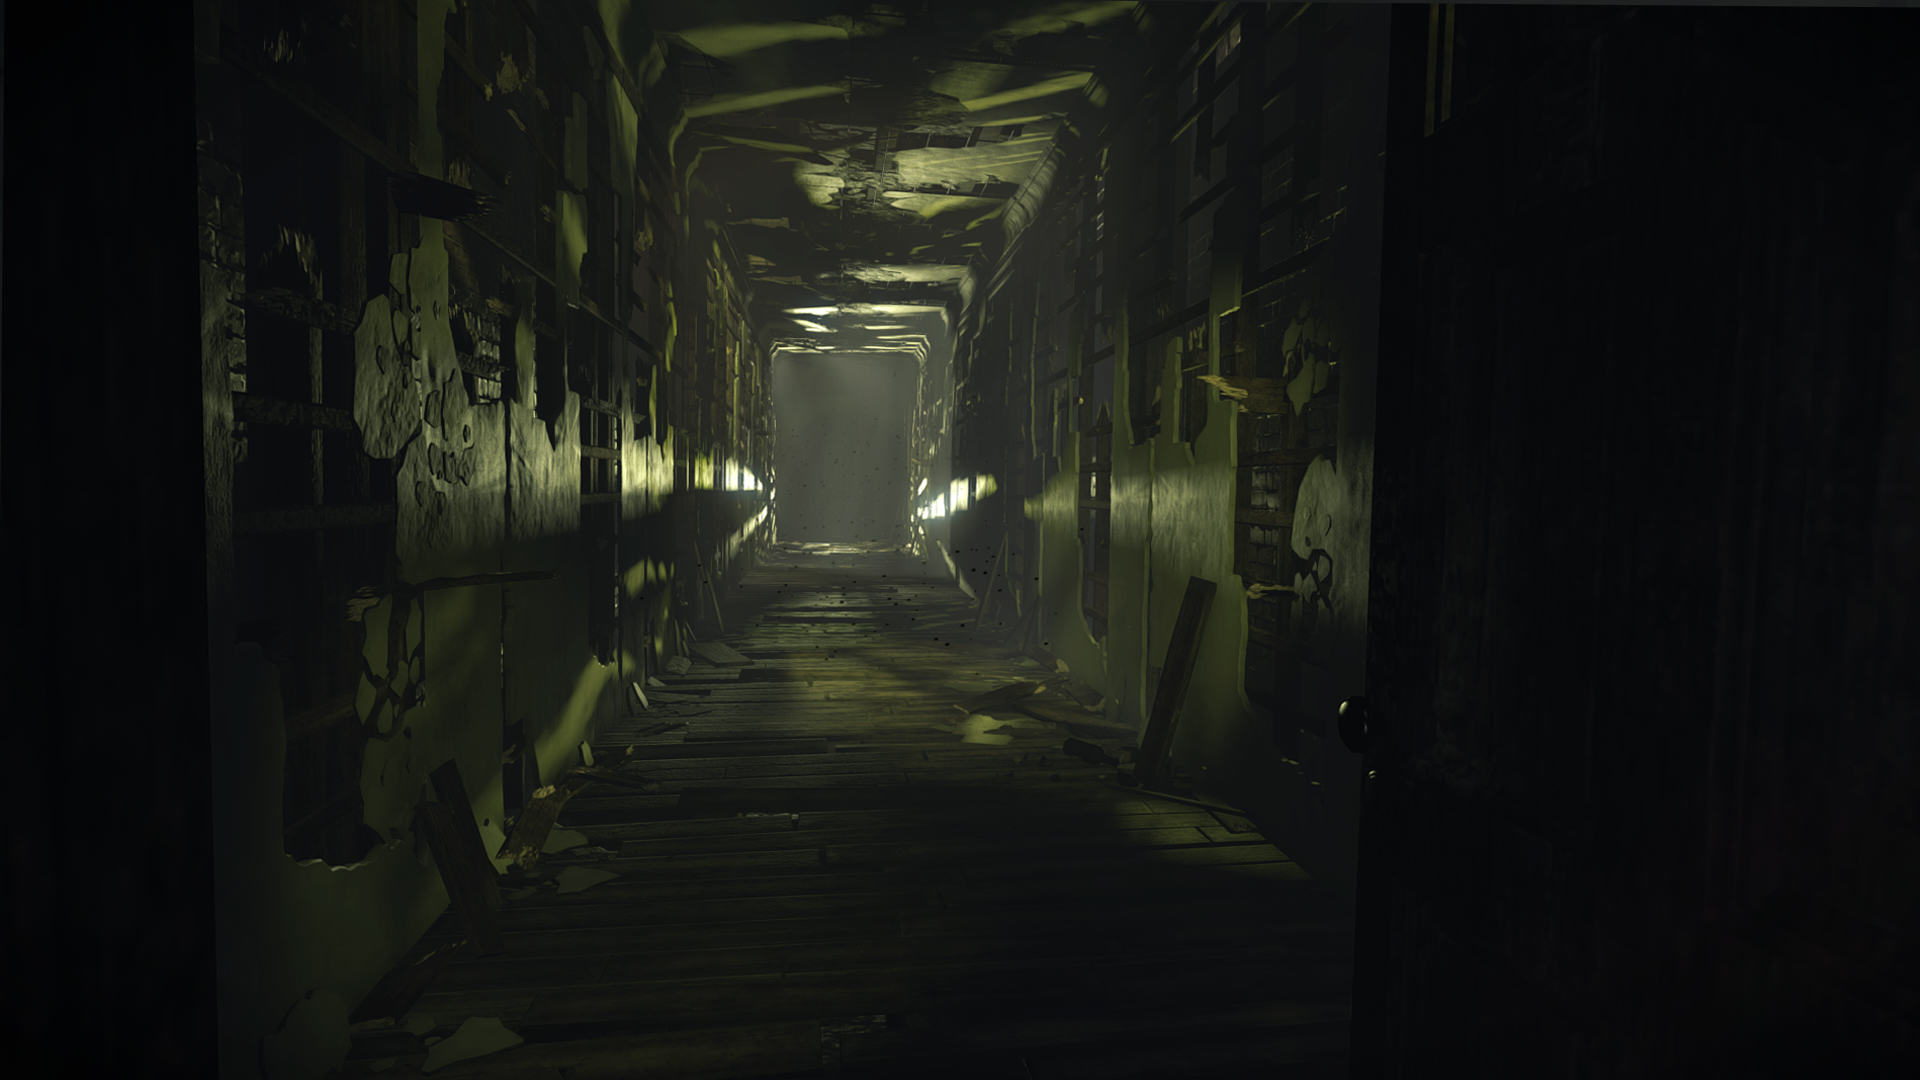 P.T. Inspired Layers Of Fear Gets Release Date, Looks Absolutely Terrifying pu28dd2c7955ce926456240b2ff0100bde 1446046458 3294303 screenshot original